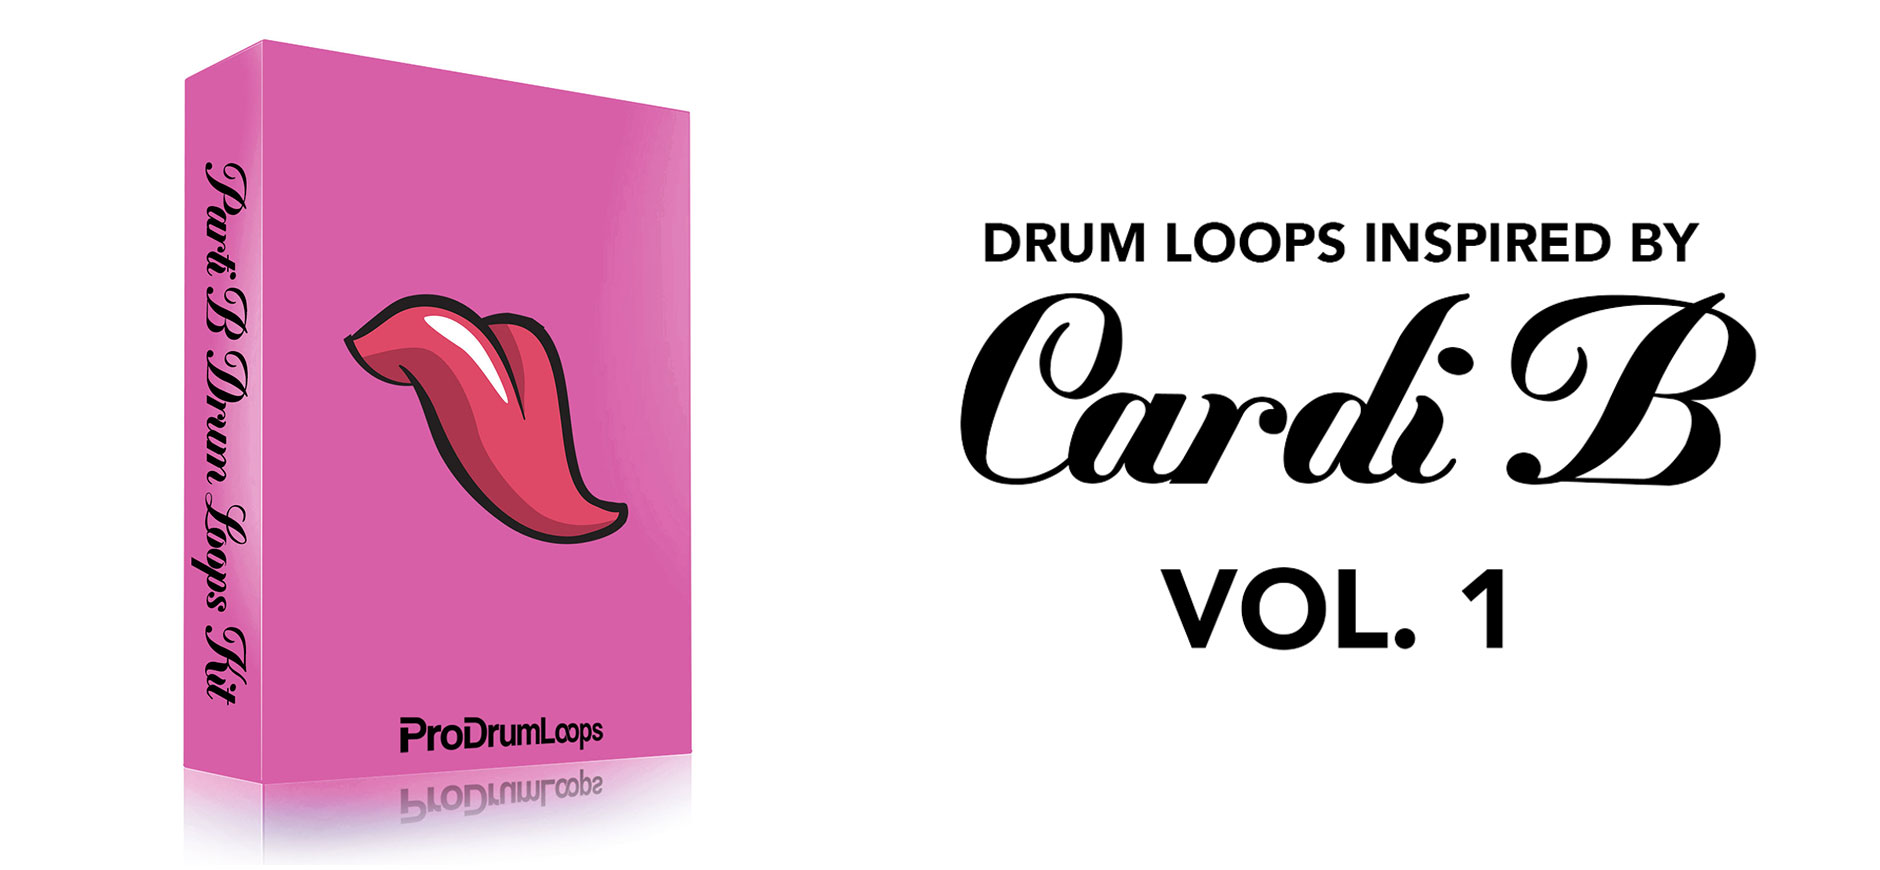 Cardi B Drum Loops-set